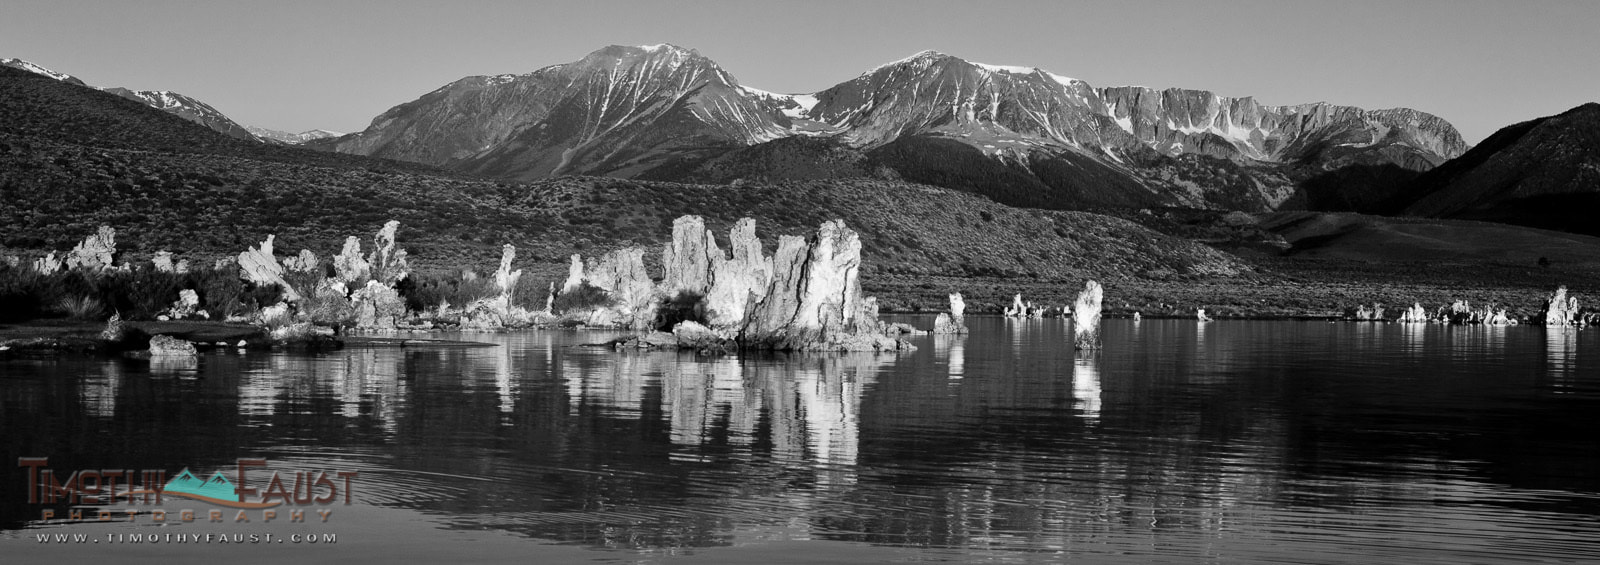 Photograph Mono Lake by Timothy Faust on 500px